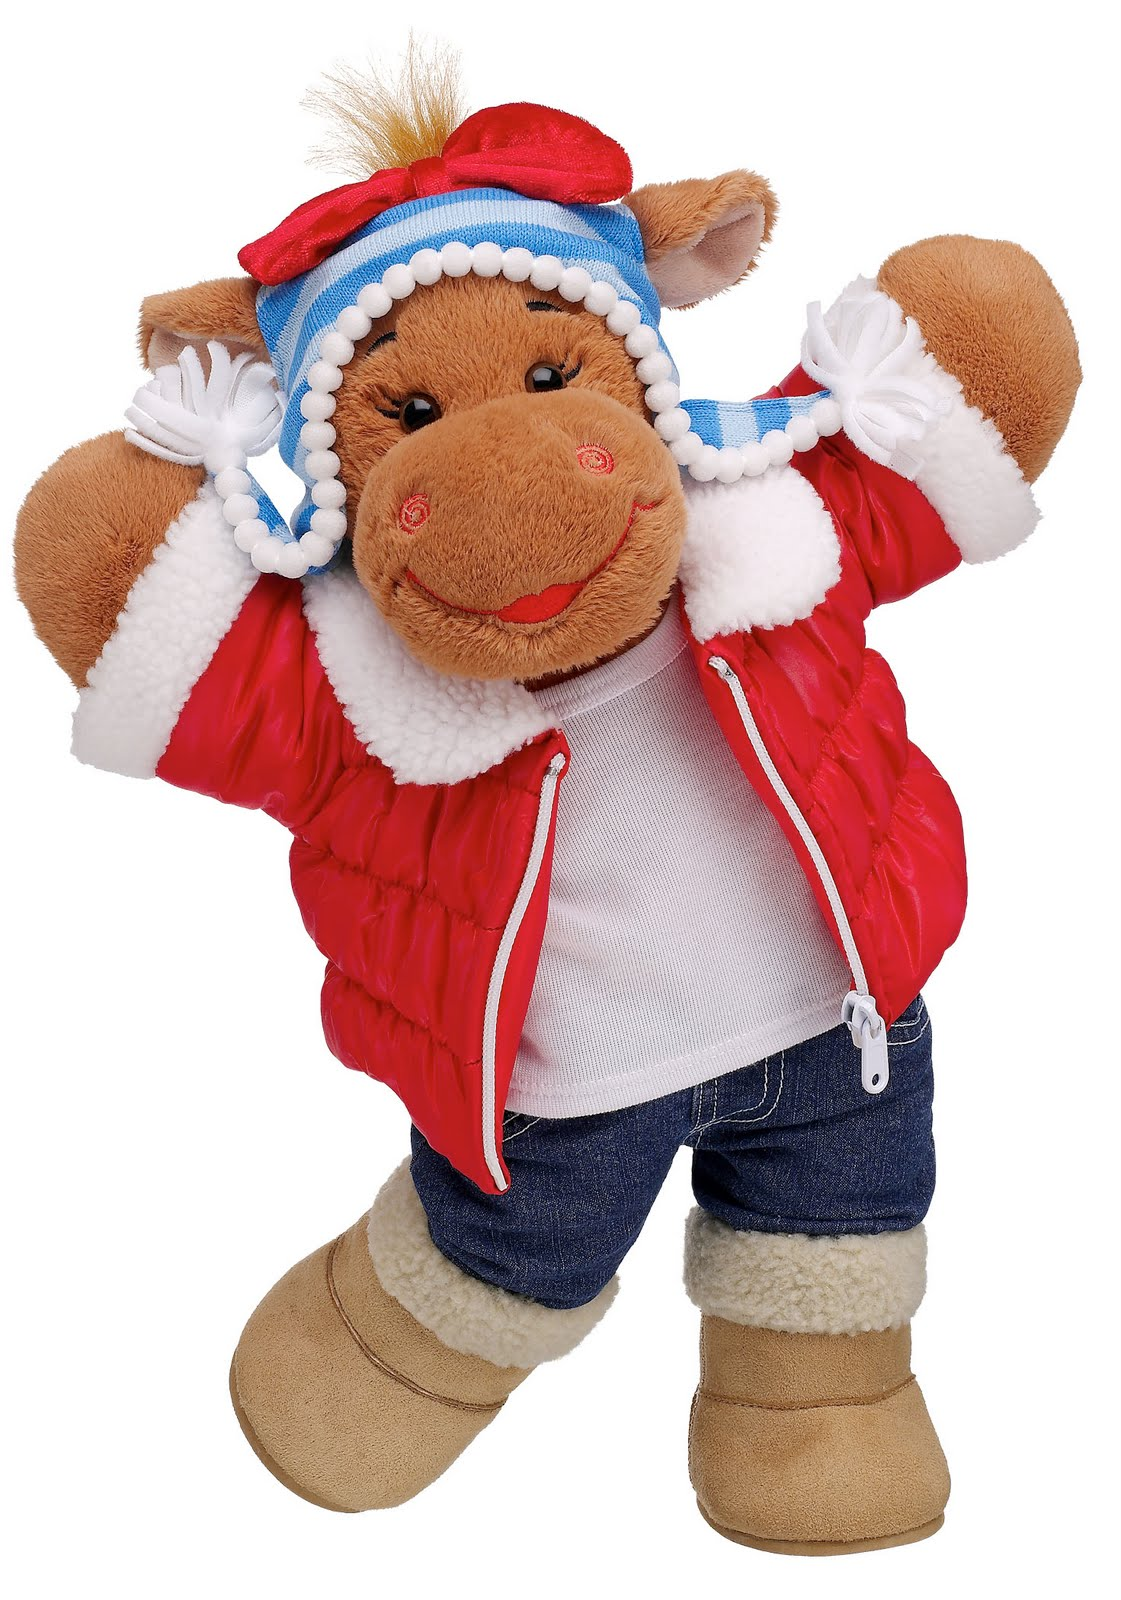 Build The Bear: 512 Kidz: Build-A-Bear Workshop Holiday GIVEAWAY